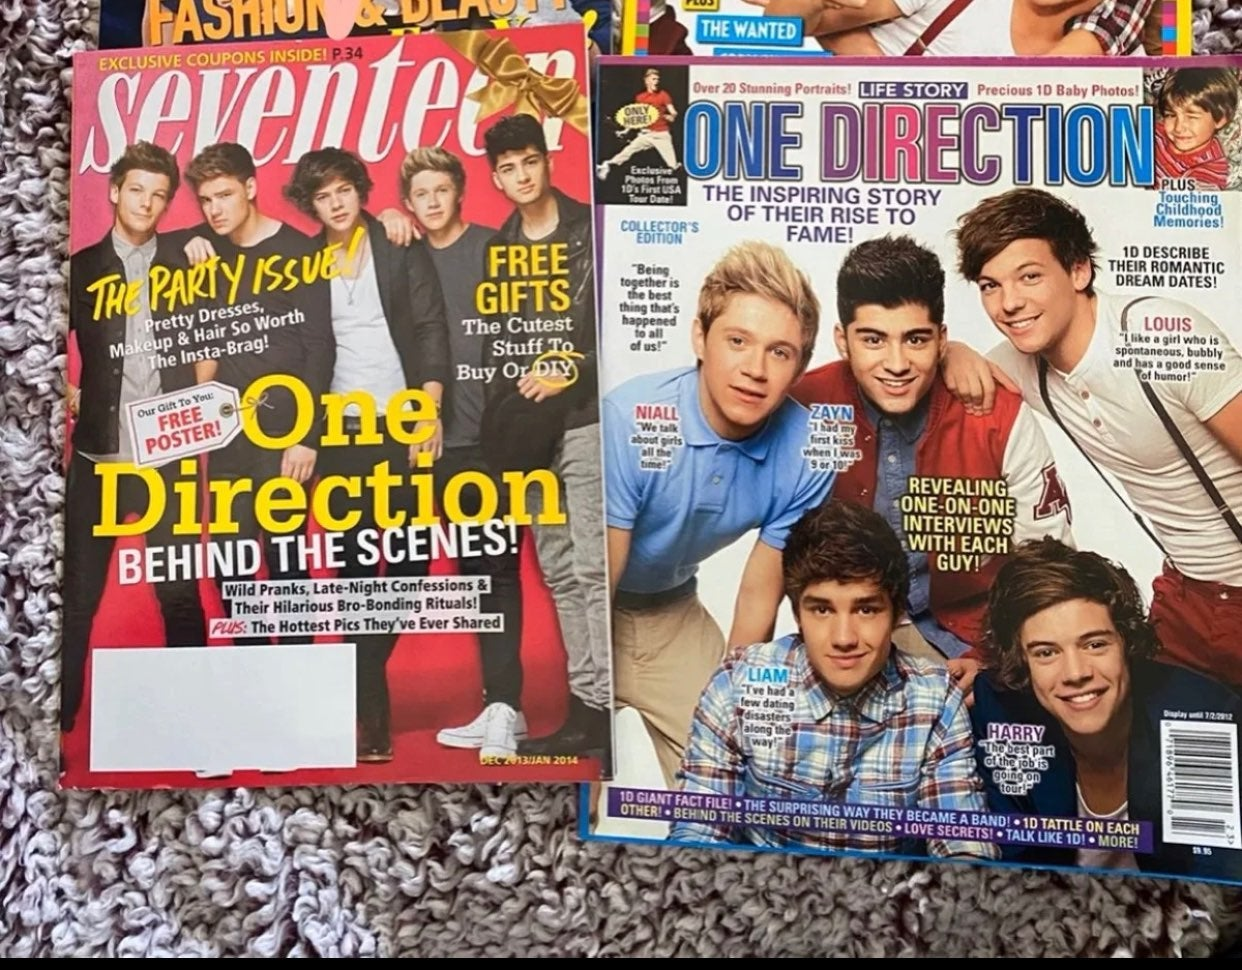 Magazines - One Direction Cover Specials